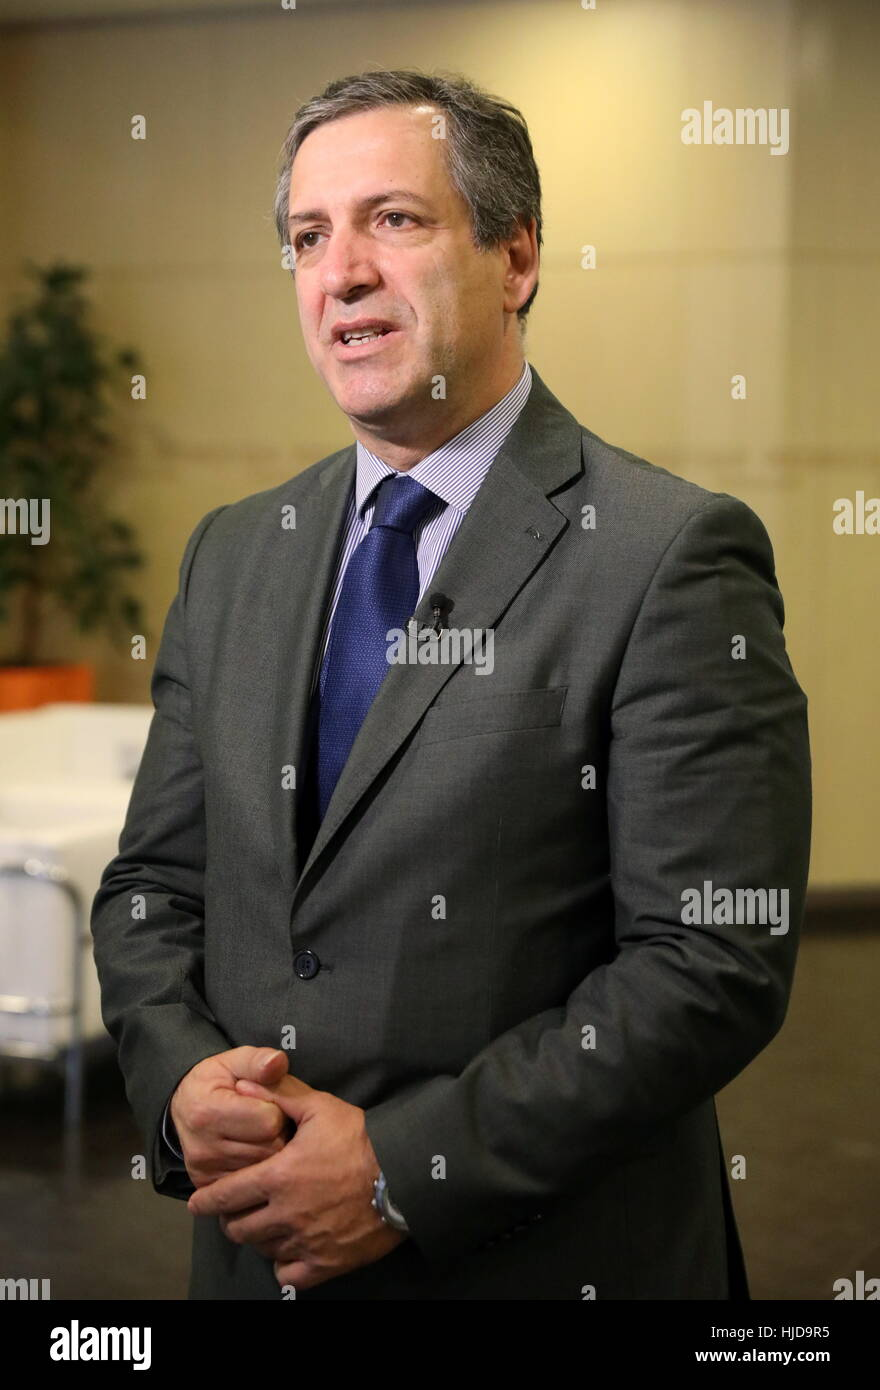 MOSCOW, RUSSIA - JANUARY 24, 2017: European Weightlifting Federation (EWF) President Antonio Urso after a press Stock Photo